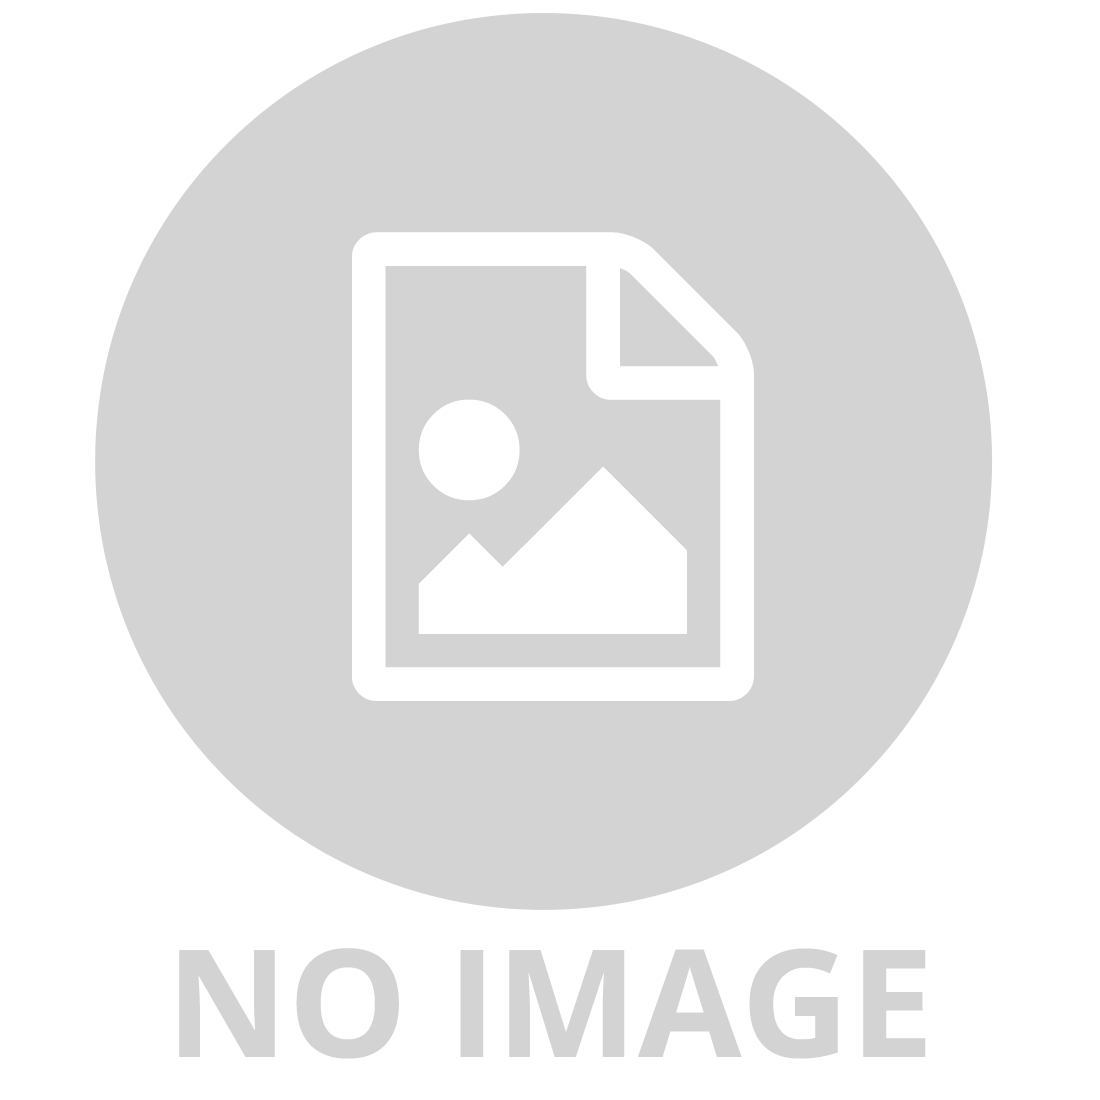 XSHOT BUG ATTACK FLYING BUGS LAUNCHER AND BUGS